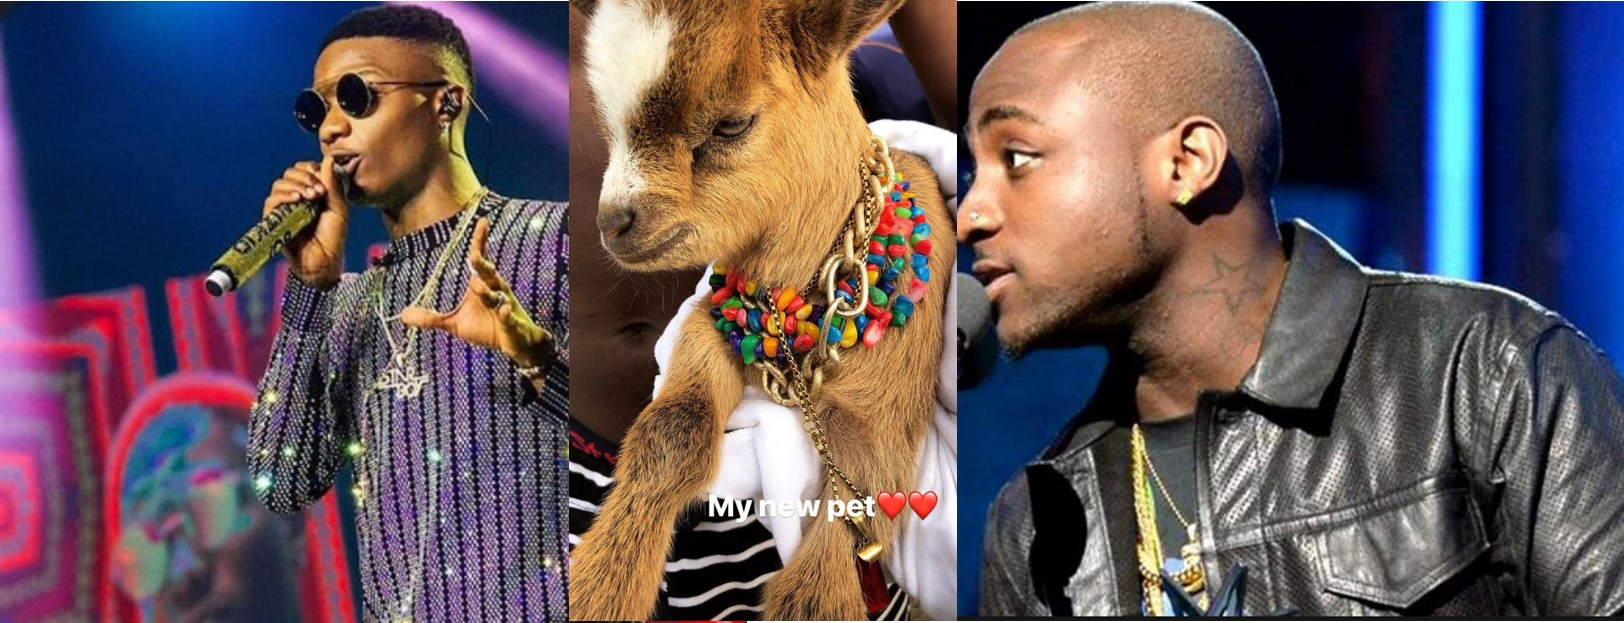 Davido reacts to Wizkid's new pet goat. (Photo)